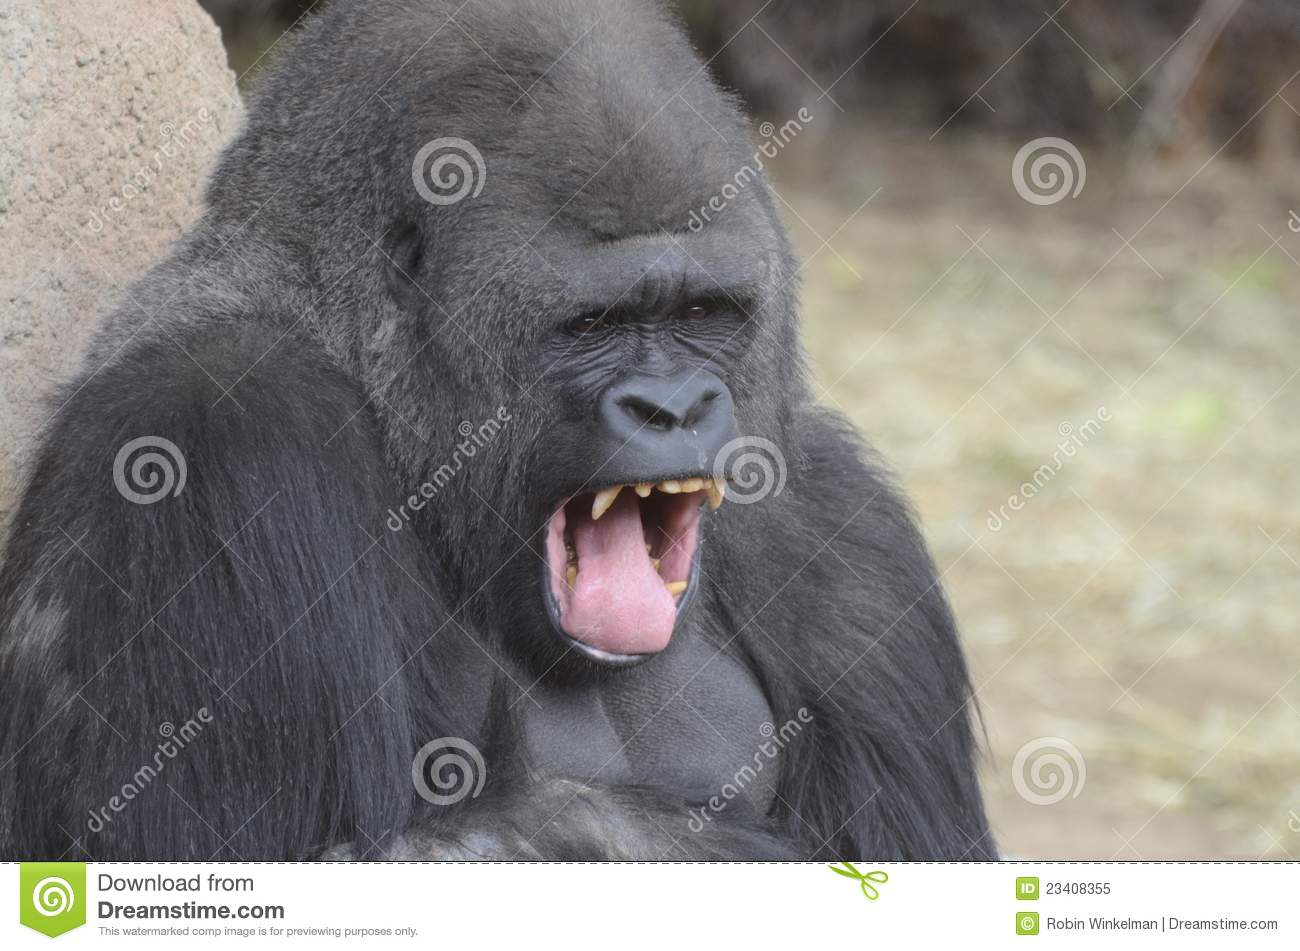 Gorilla Yawn Royalty Free Stock Photo - Image: 23408355